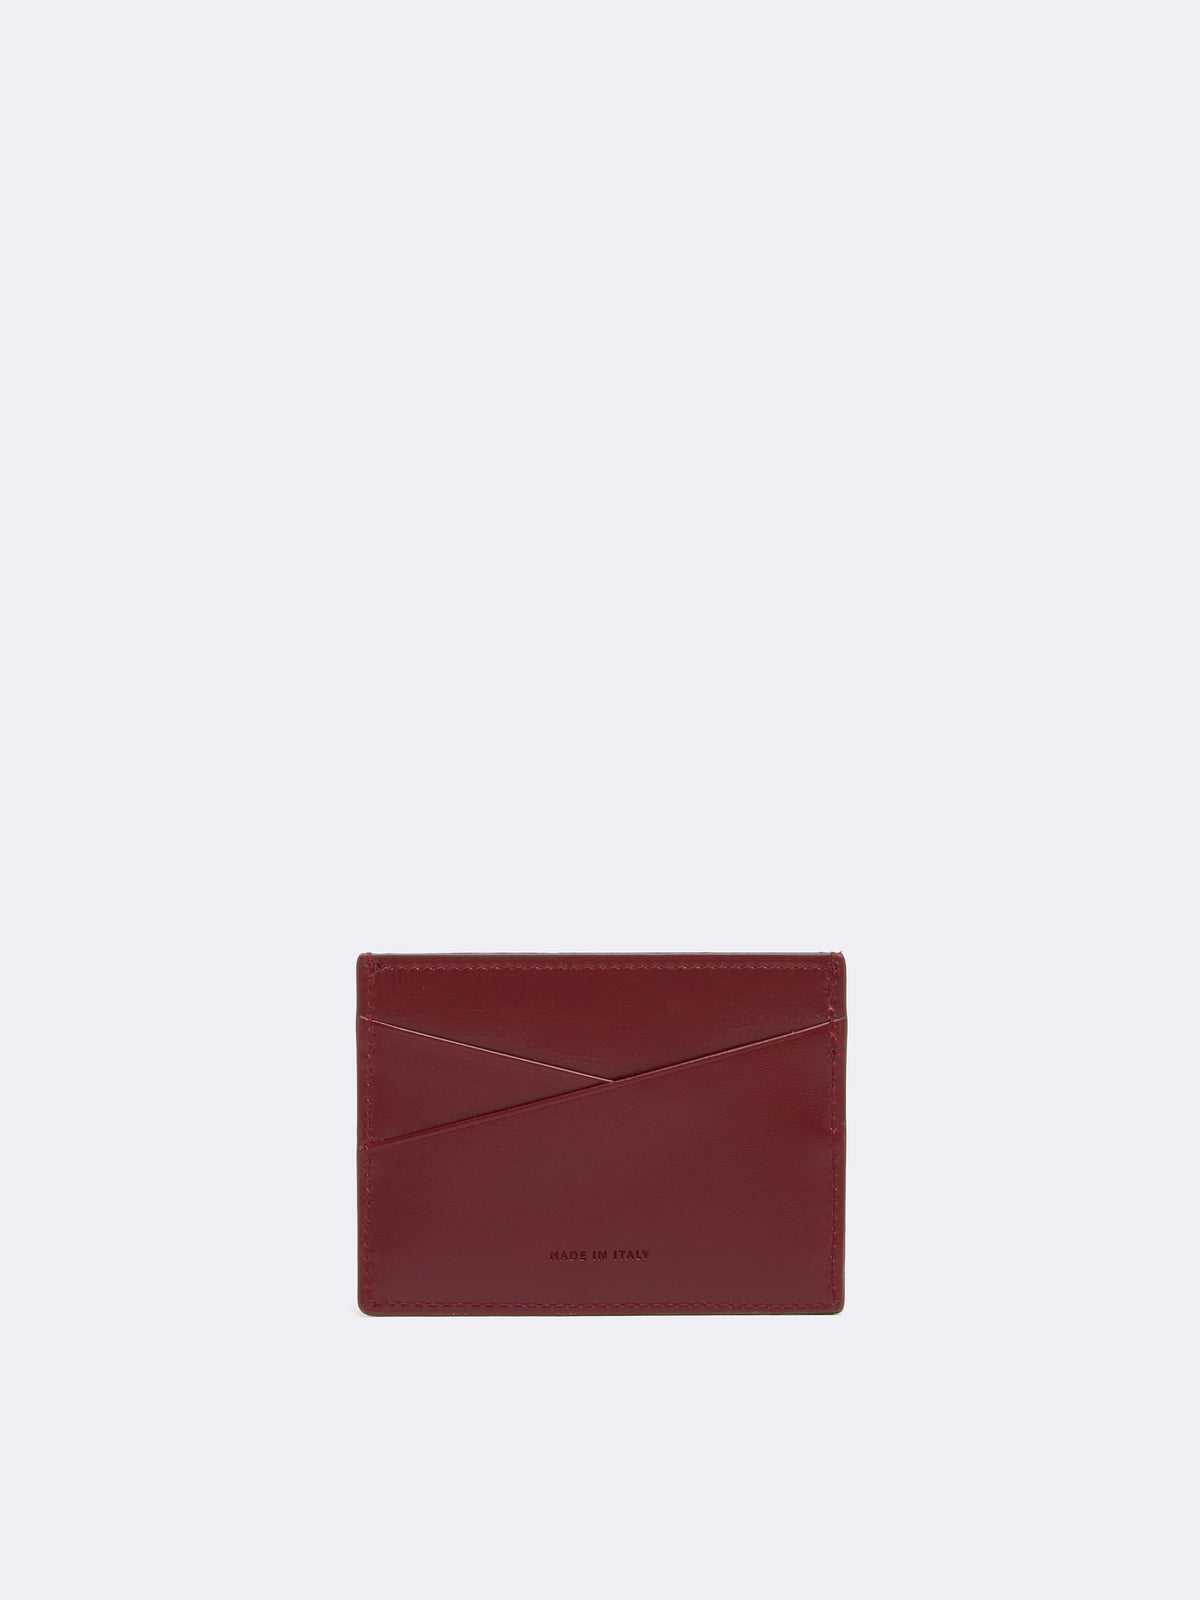 Mark Cross Leather Card Case Smooth Calf Burgundy Back